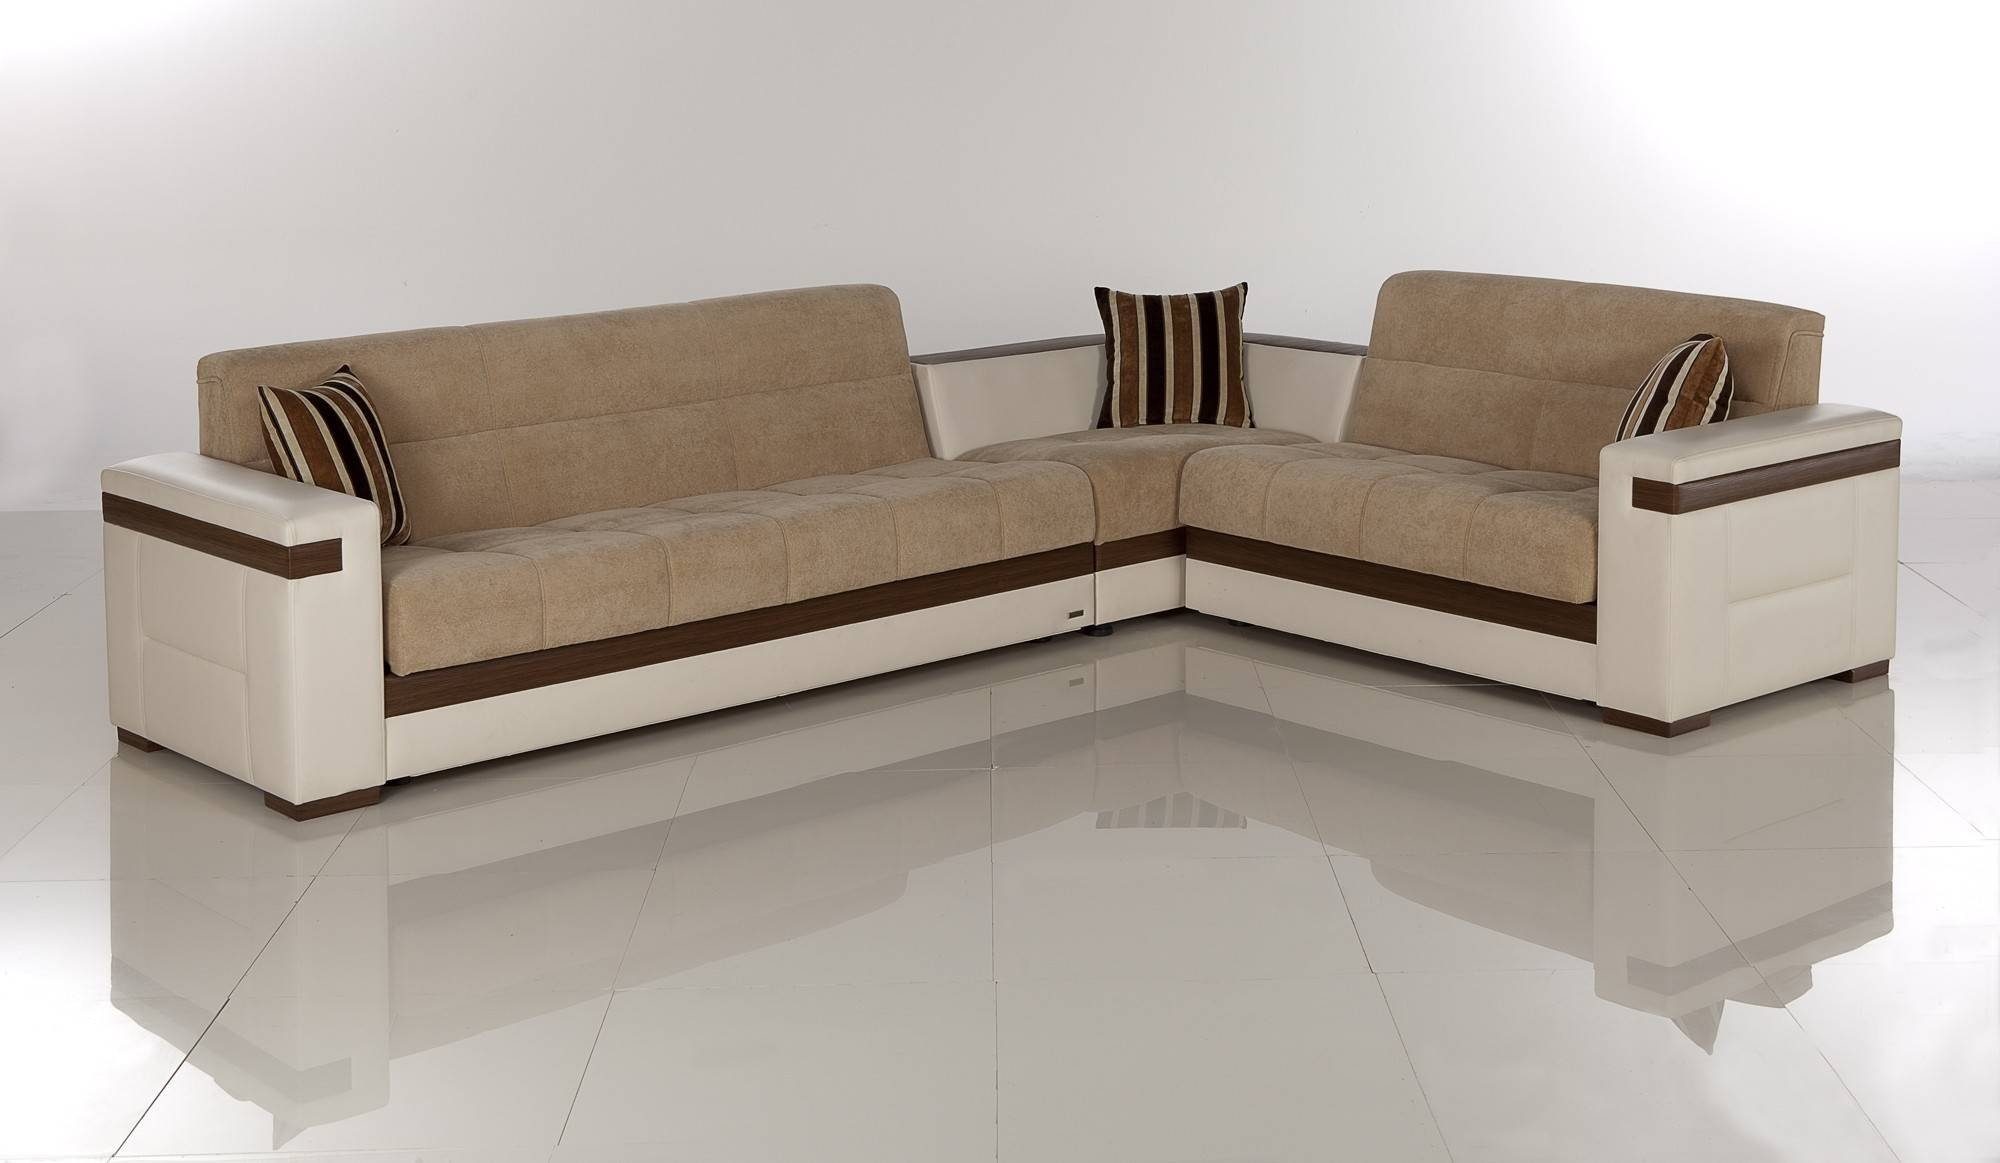 Trend Sectionals With Sofa Beds 78 With Additional Leather regarding Leather Sectional Sofas Toronto (Image 22 of 25)